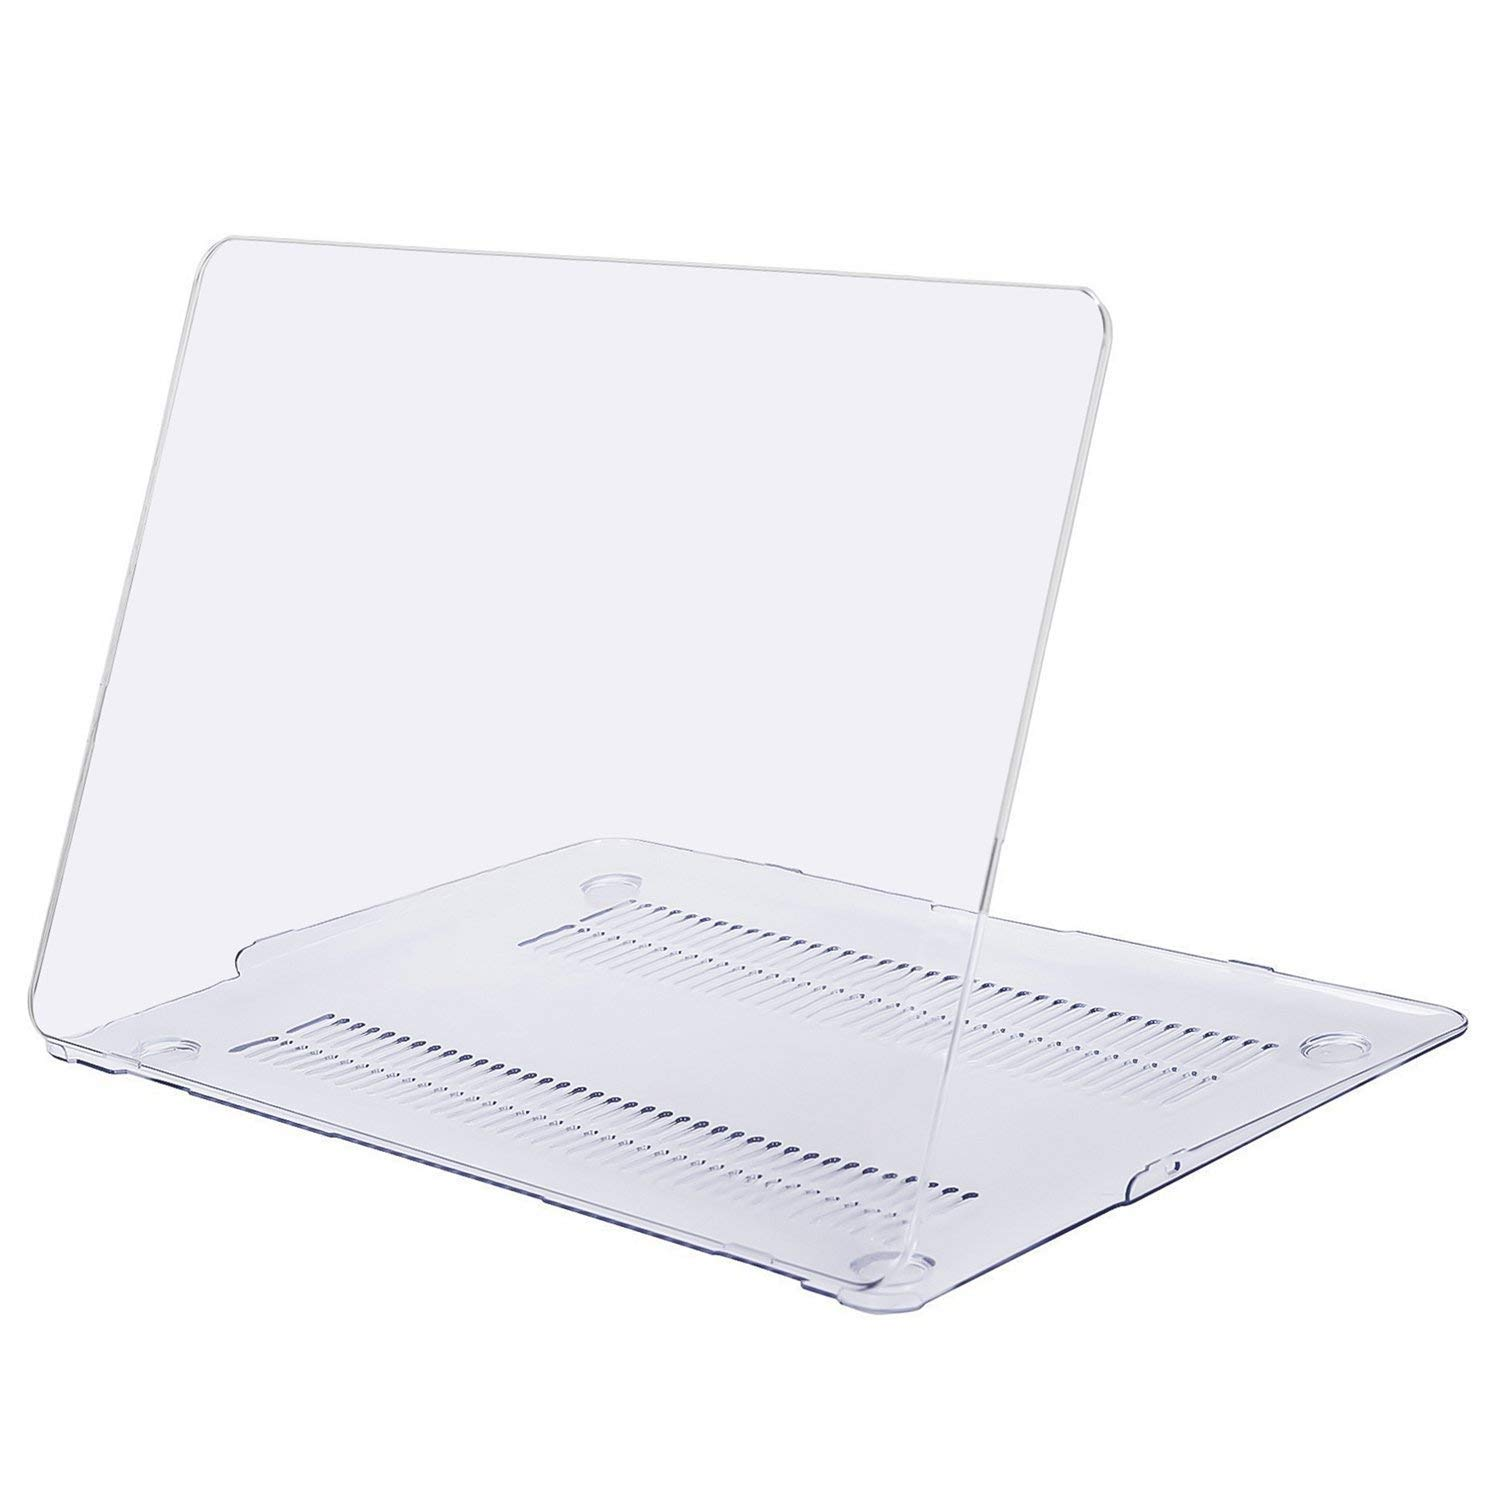 HF-MBA11-CSC: Plastic Hard Case Cover Compatible with MacBook Air 11 Inch (Models: A1370 and A1465), Crystal Clear